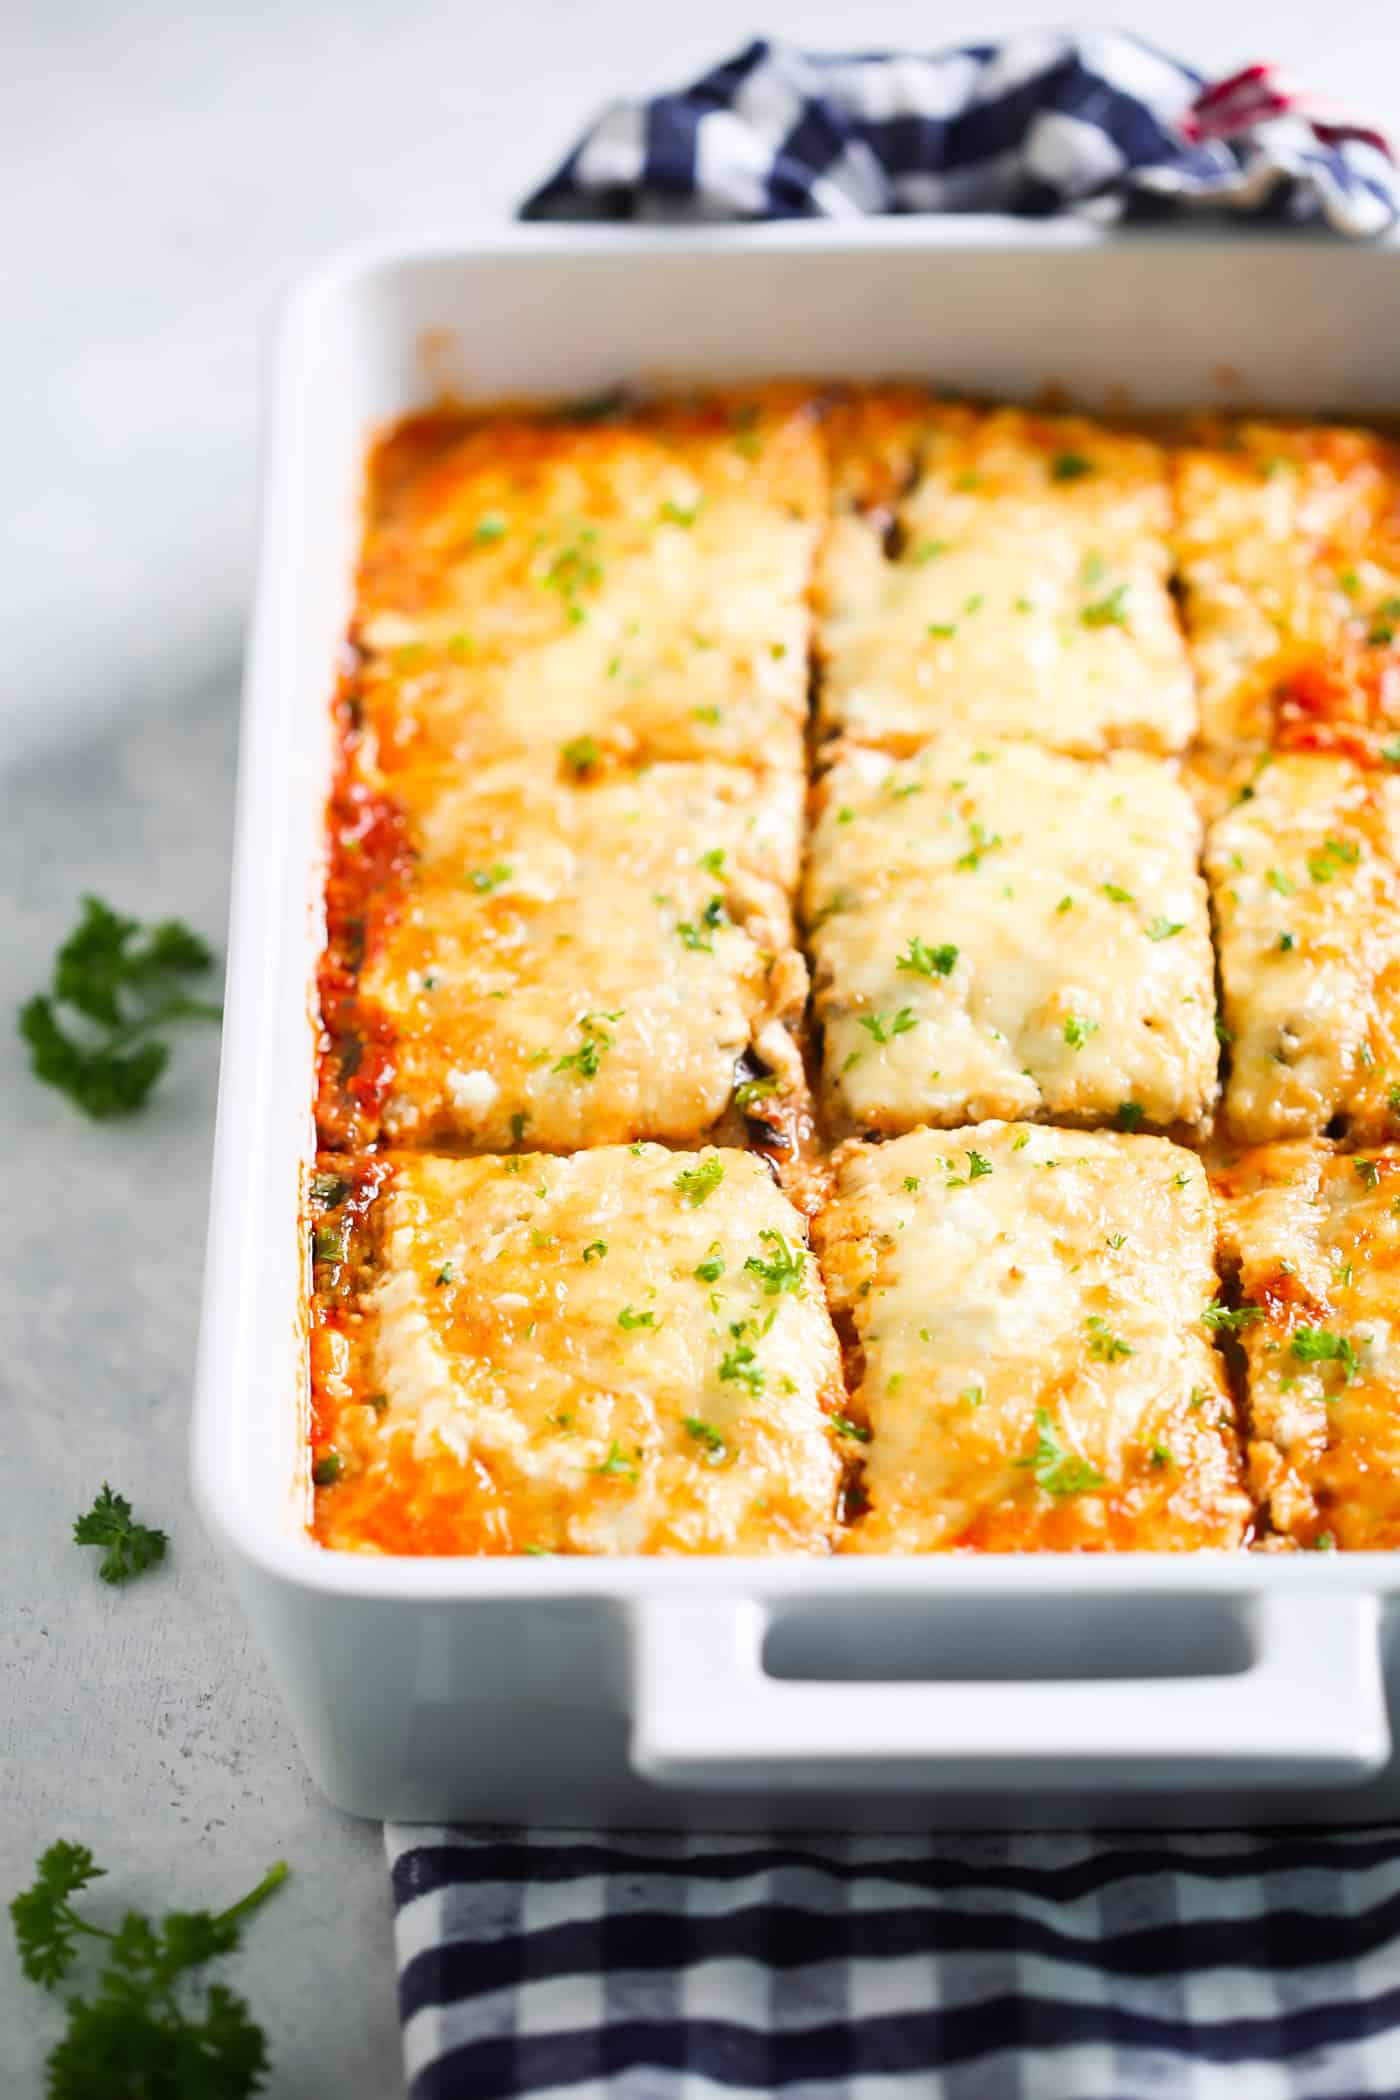 Low-carb Eggplant Lasagna Vegetarian Keto Recipe